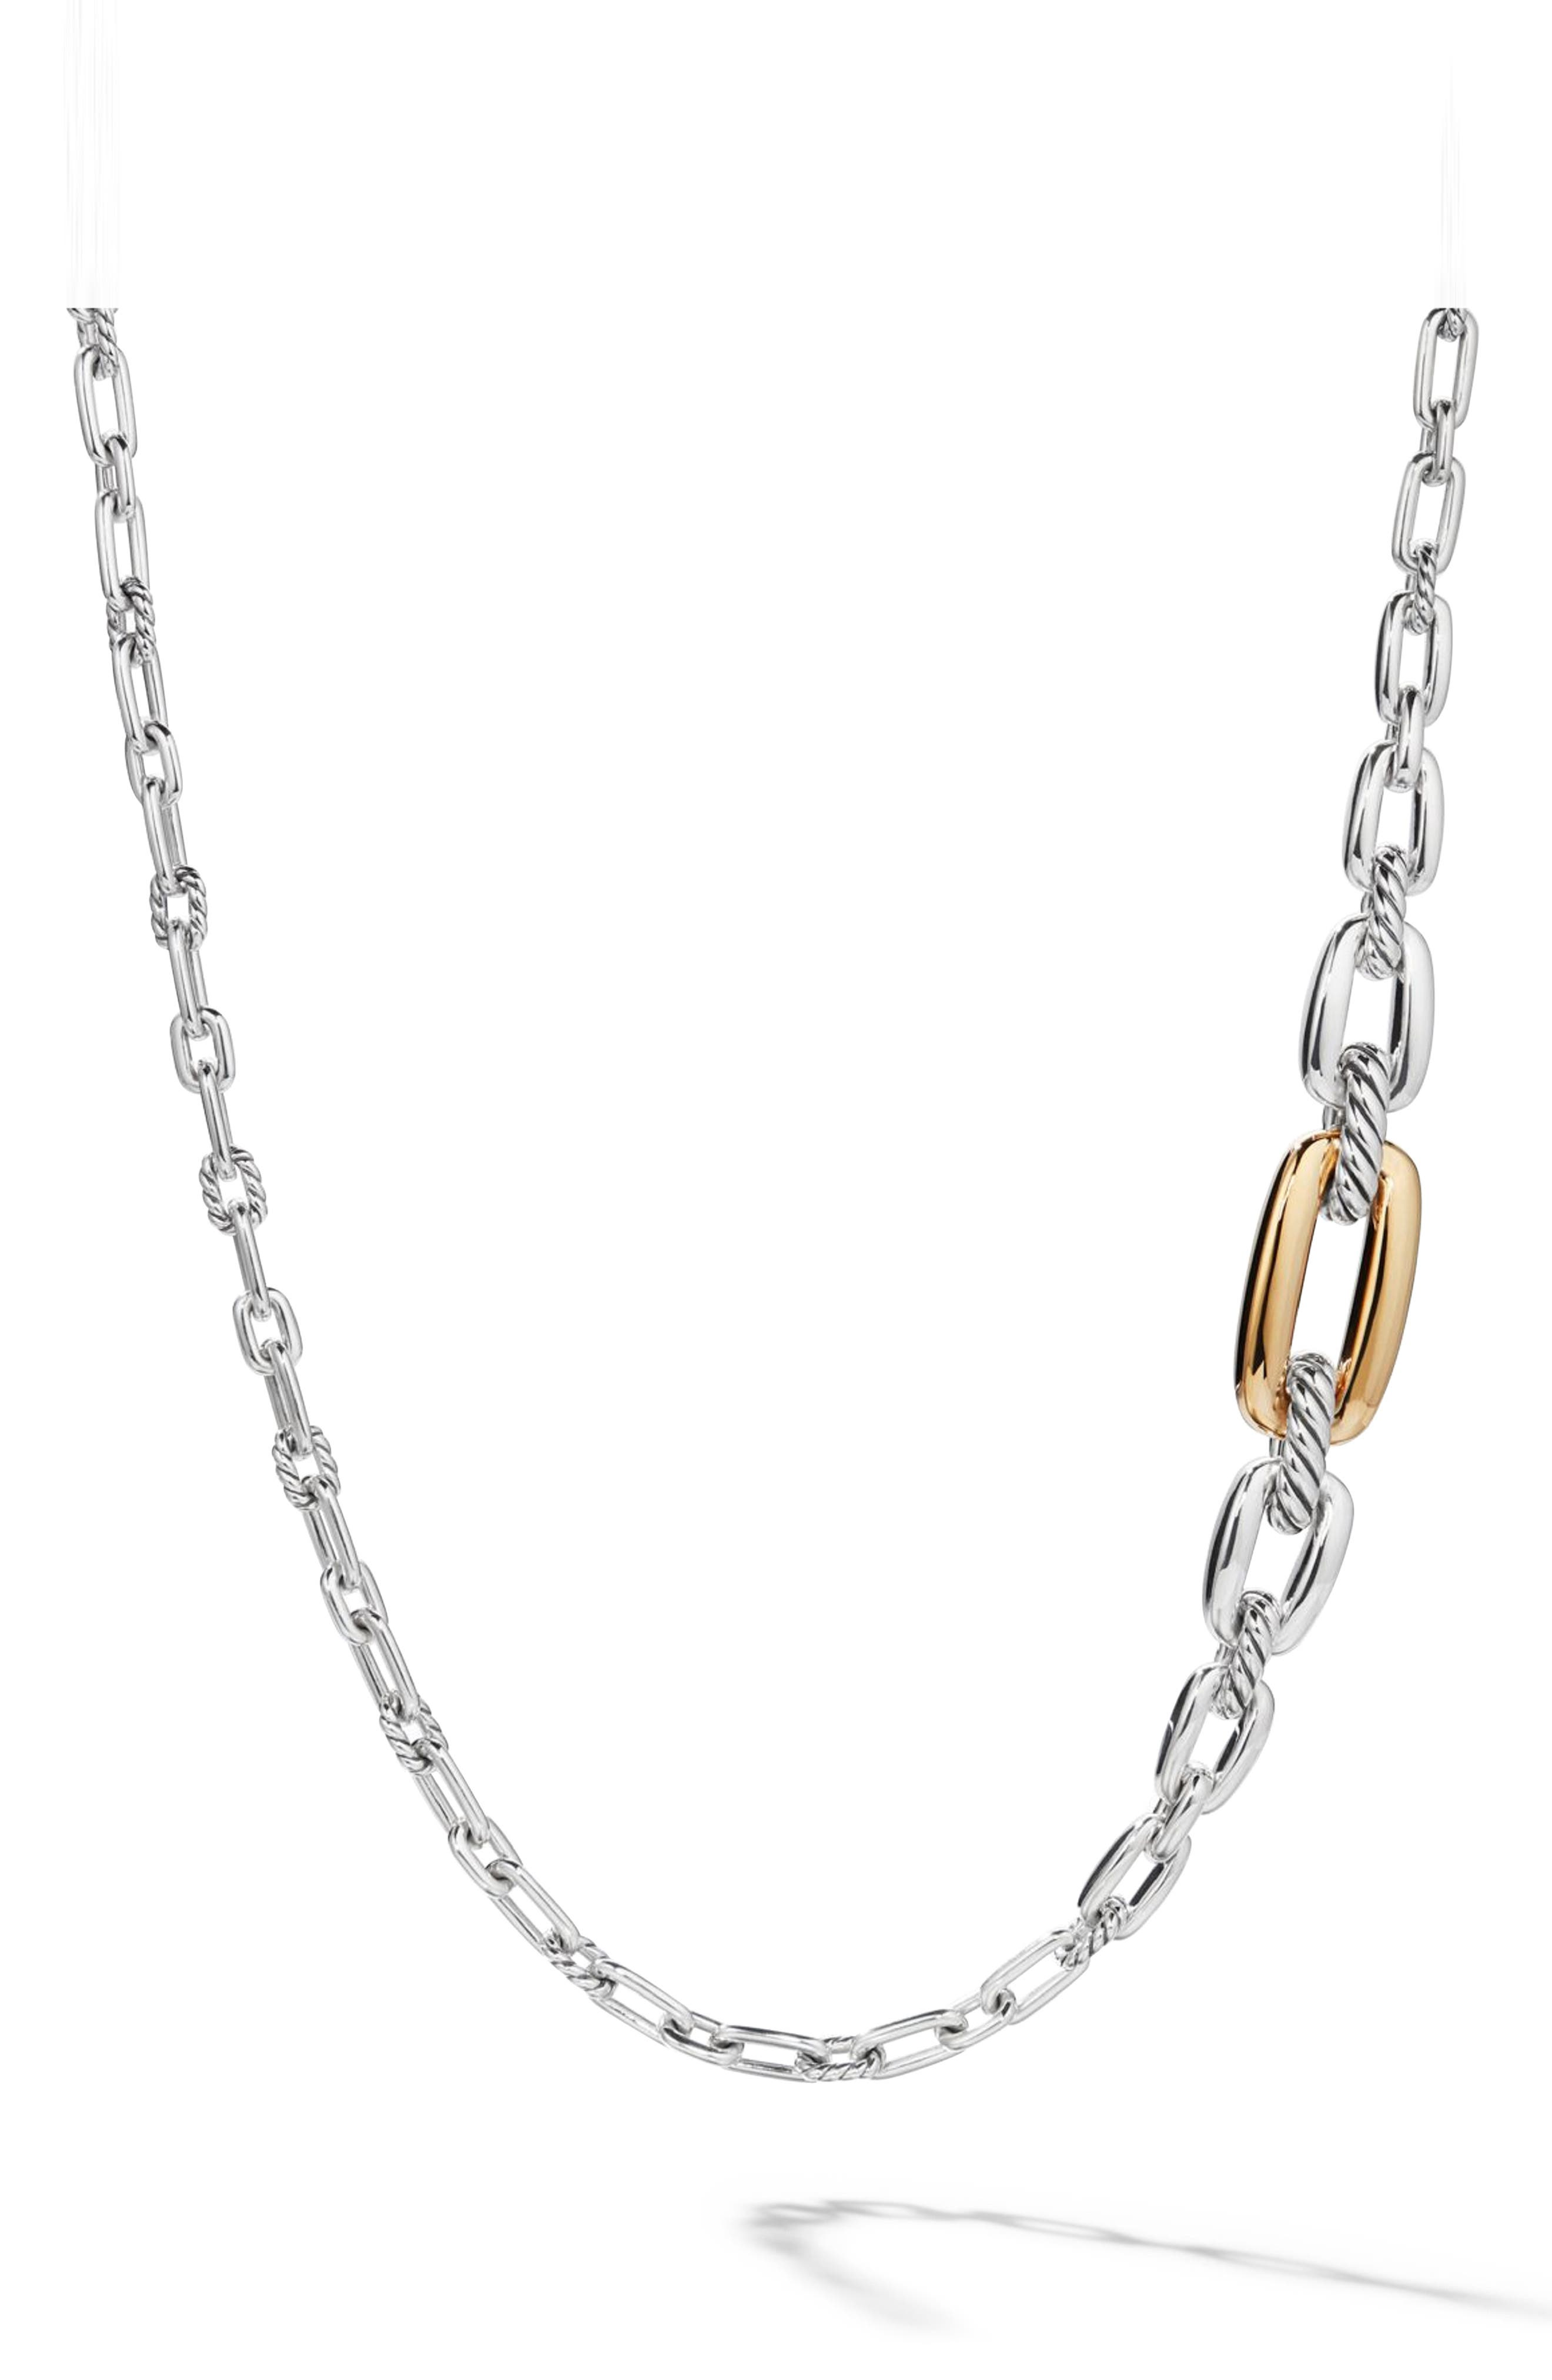 Wellesley Link Long Necklace with 18k Gold,                             Main thumbnail 1, color,                             18K YELLOW GOLD/ SILVER